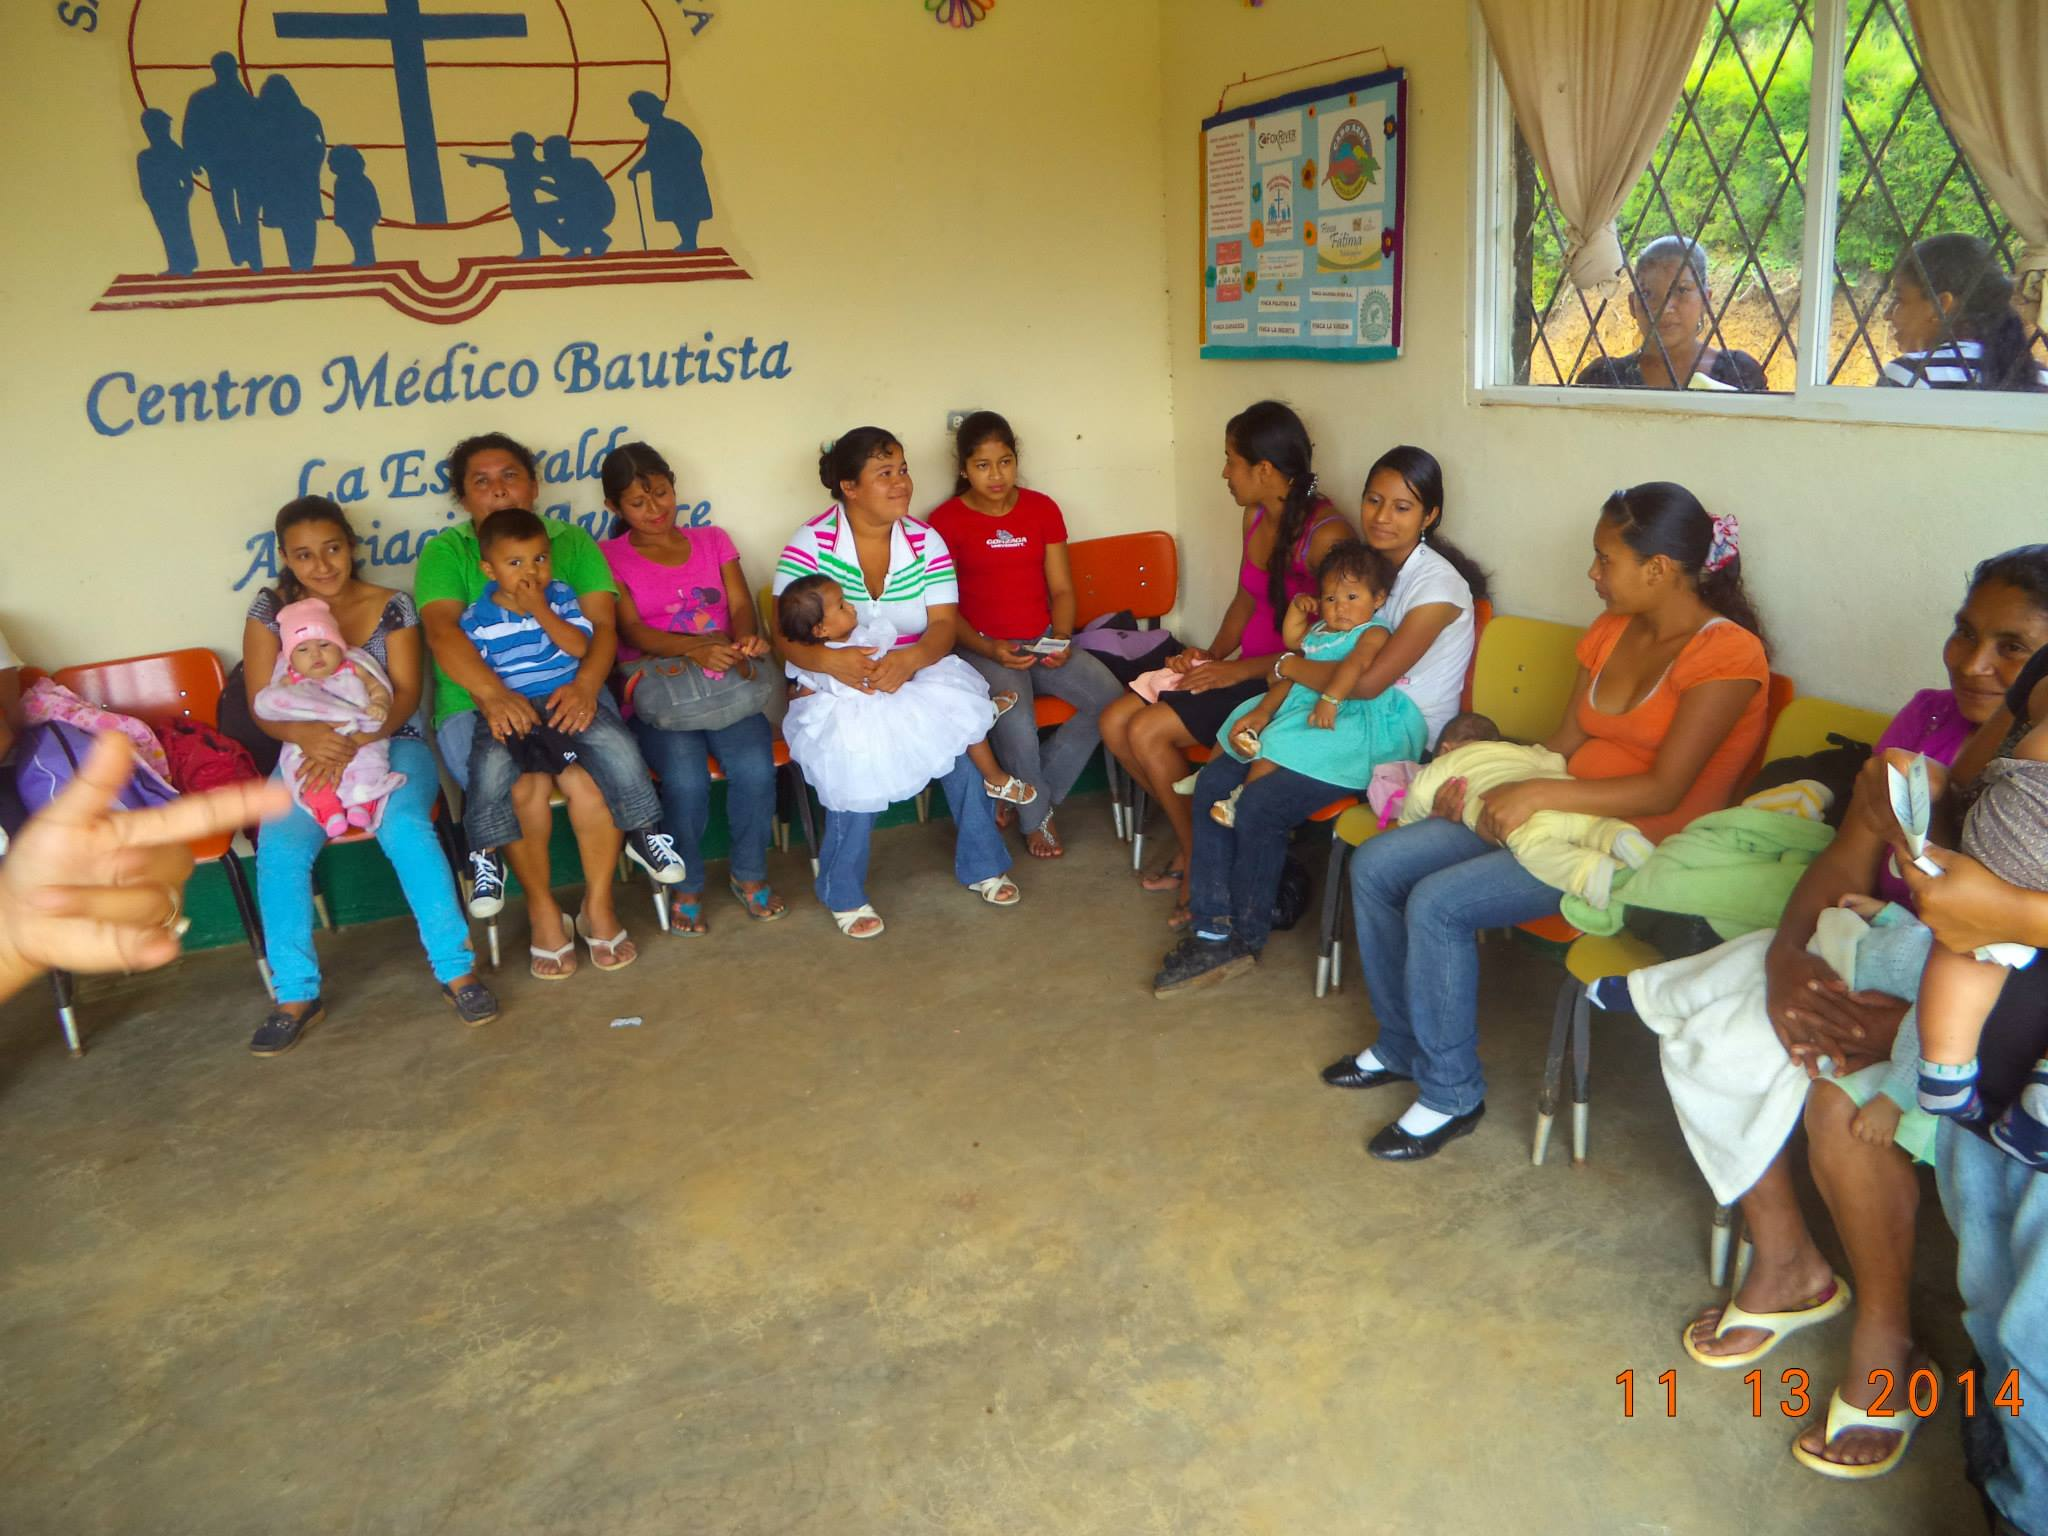 This picture is from the waiting room of the clinic in La Esmeralda, Nicaragua. Since the clinic opened in 2011, the doctor, nurse and pharmacist see 10,000 patient visits in a year. Fox River recently completed the addition of a house for the doctor. We also support the local church by sponsoring a community sports ministry and recently purchased land for a new church plant in Las Nubes.